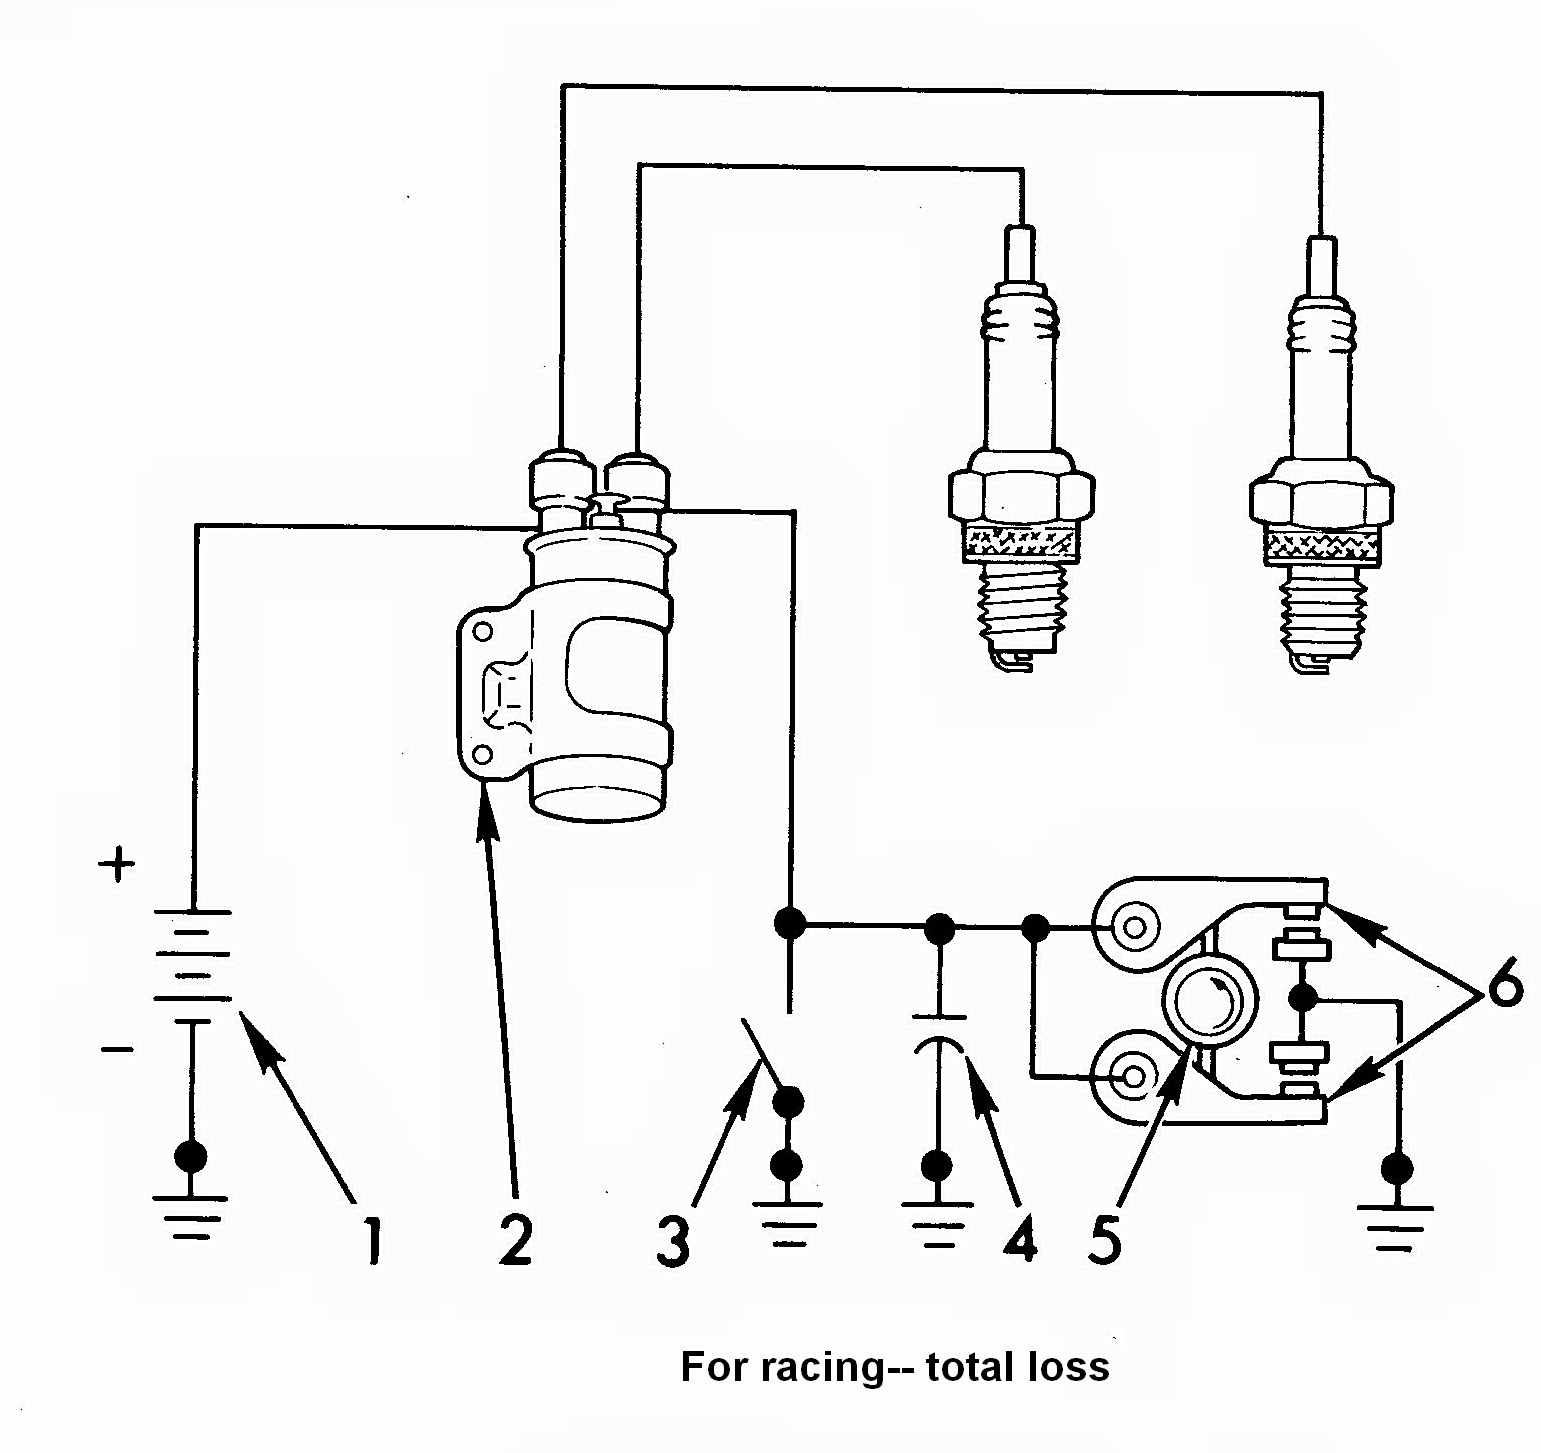 Coils Street Racing Wiring Diagram. Ignition